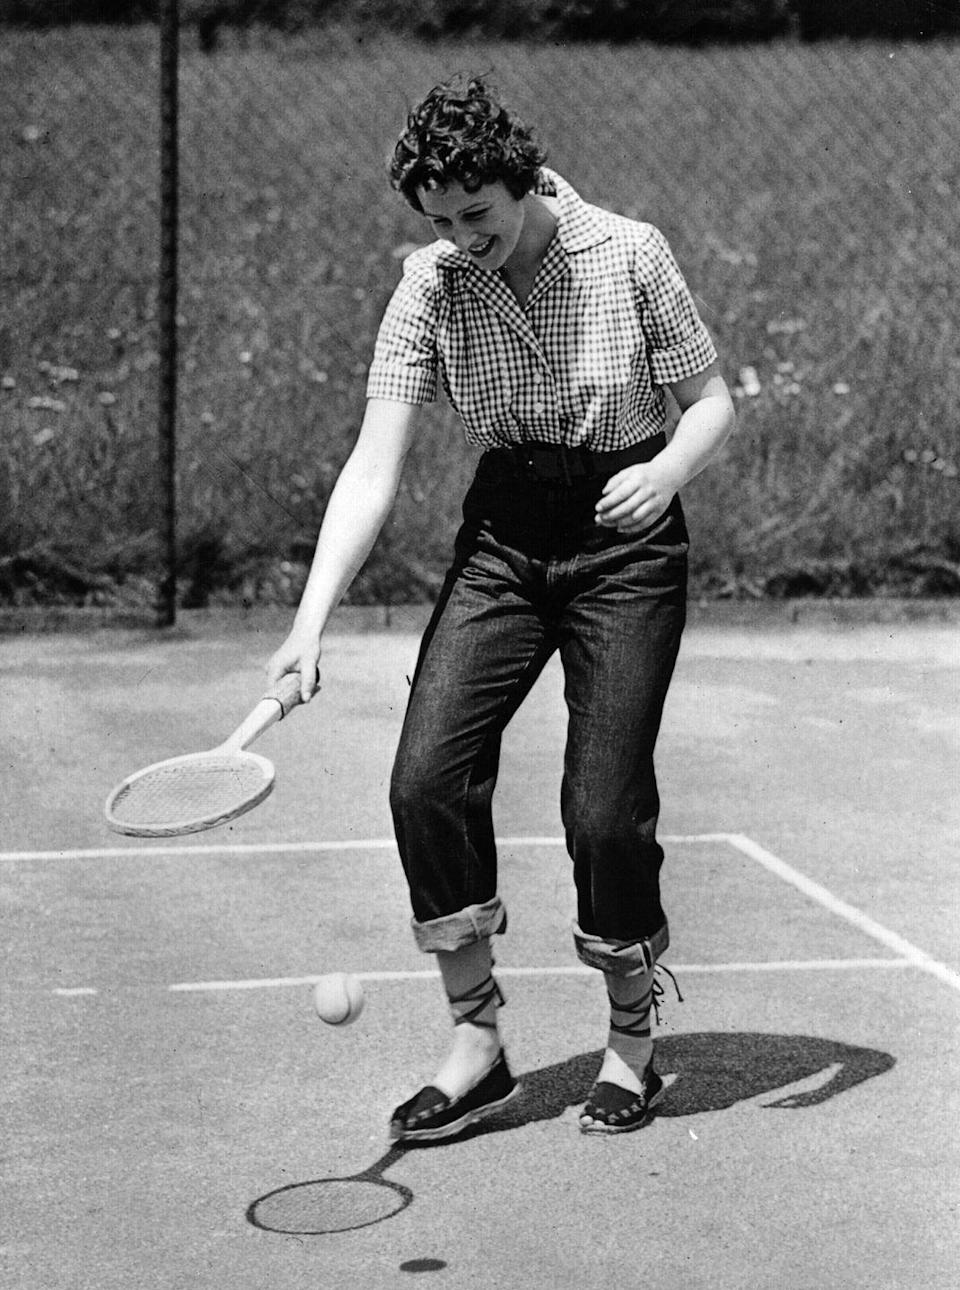 <p>Princess Diana is often credited as being the first Princess to publicly wear jeans, but that's not true: Here Princess Alexandra of Kent wears jeans to play tennis at her family home in Buckinghamshire. Jeans as activewear: how far we've come.</p>